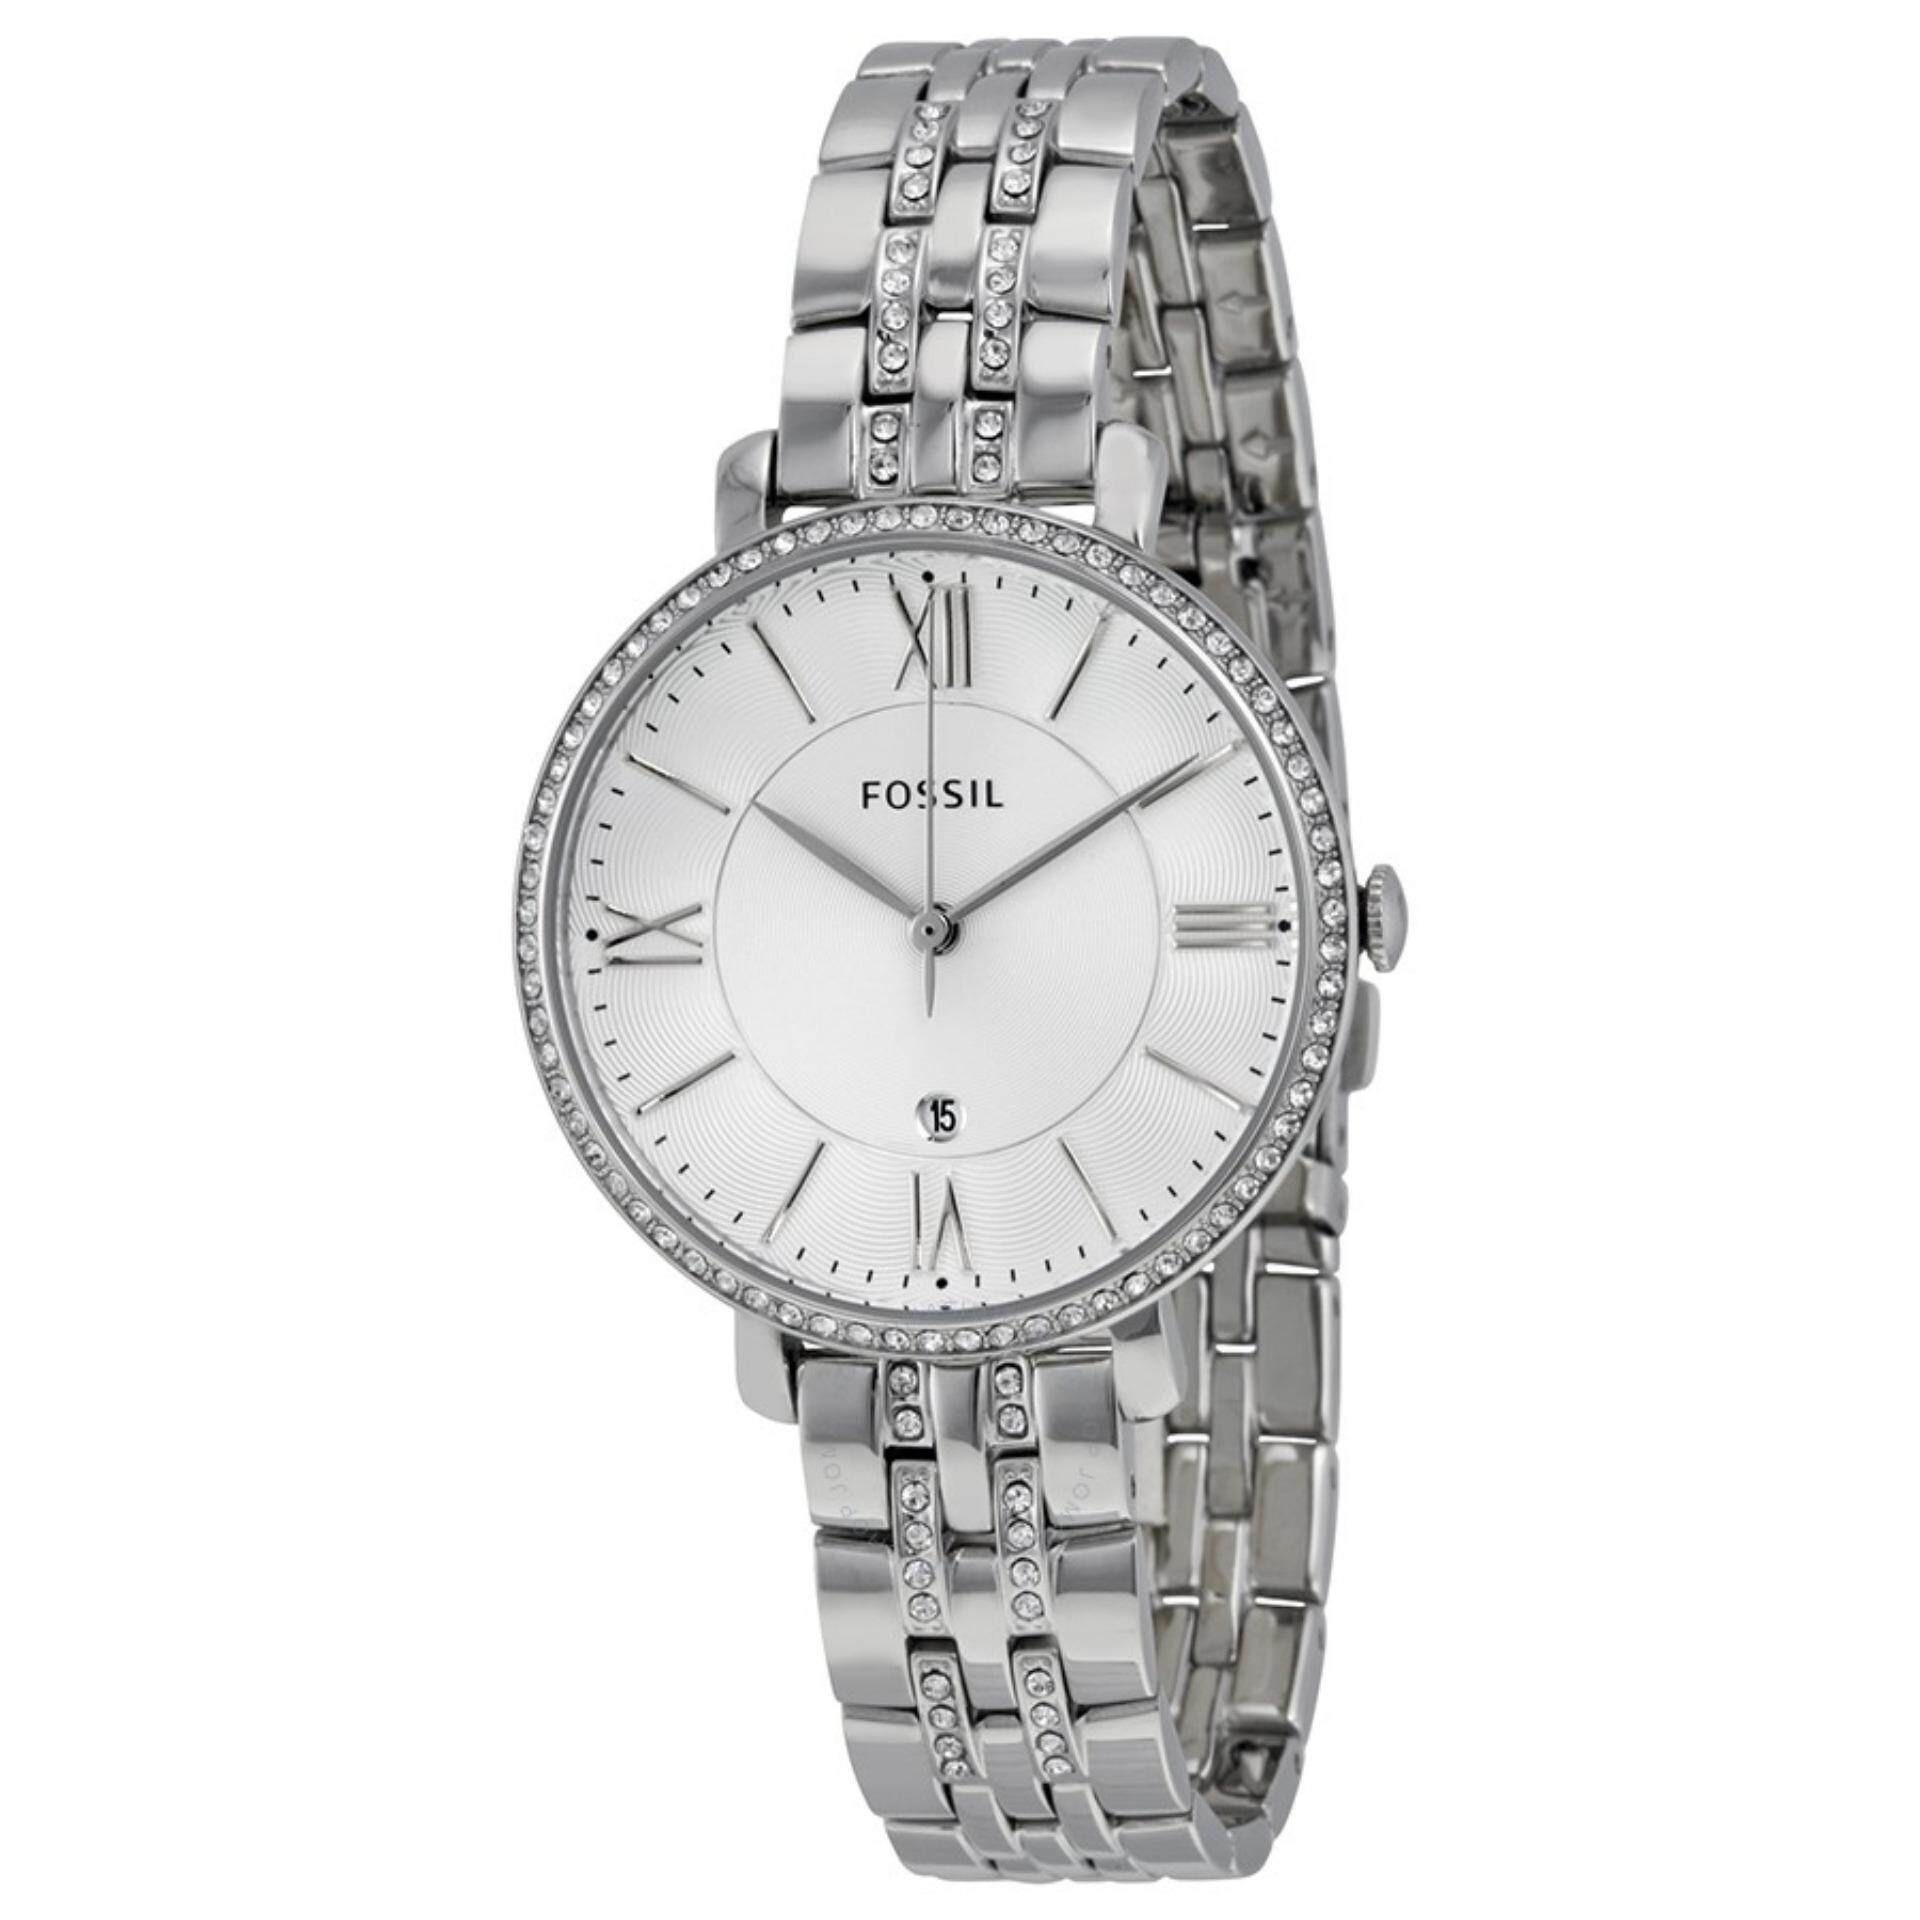 Fossil Watches Price In Malaysia Best Lazada Jam Tangan Neutra Chronograph Stainless Steel Fs5384 Womens Jacqueline Silver Dial Crystal Bezel Watch Es3545